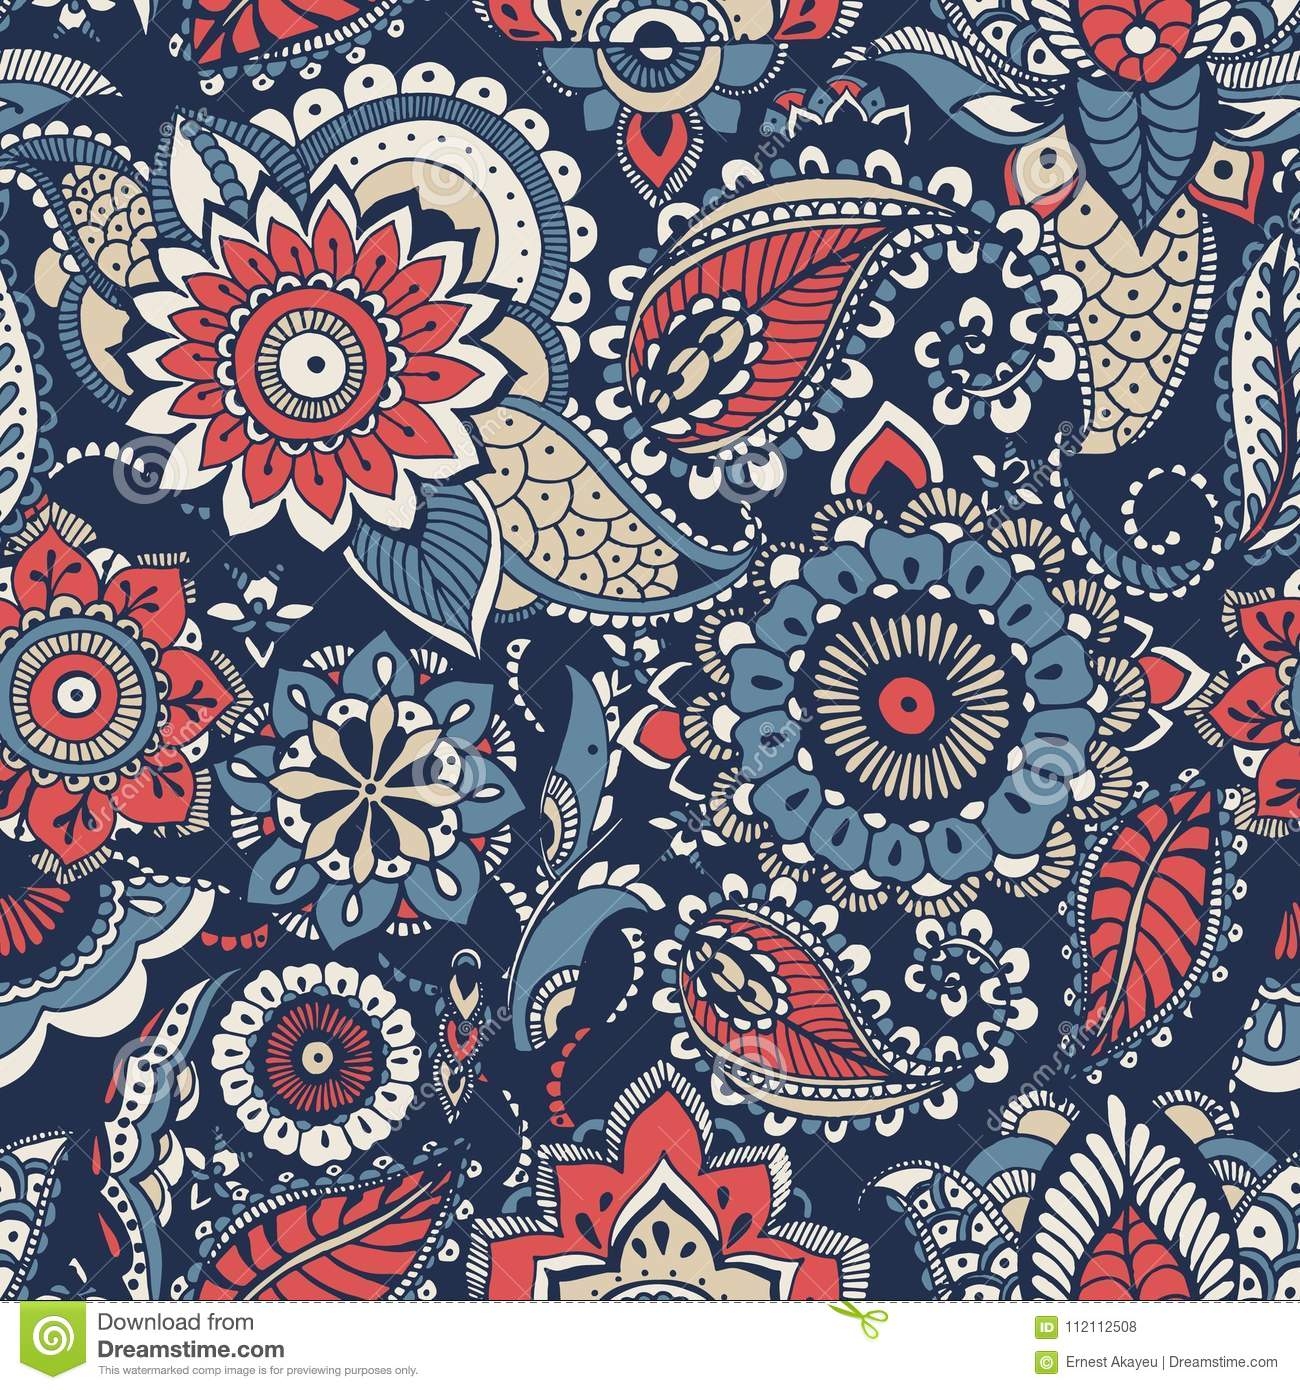 Floral paisley seamless pattern with colorful folk oriental motifs or mehndi elements on blue background. Motley